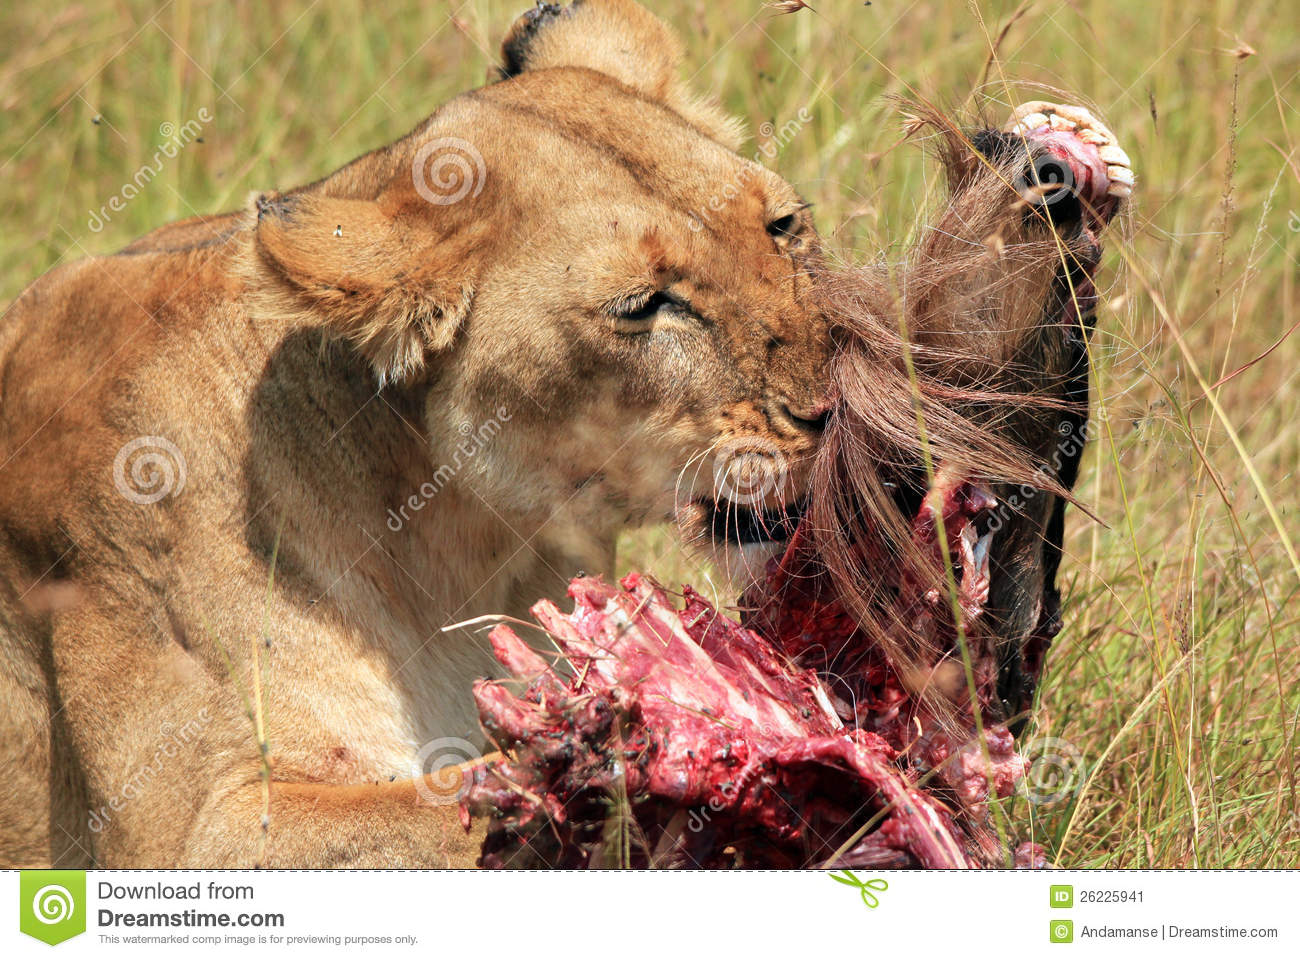 Action Leeuwen Lion With Prey Stock Image - Image: 26225941